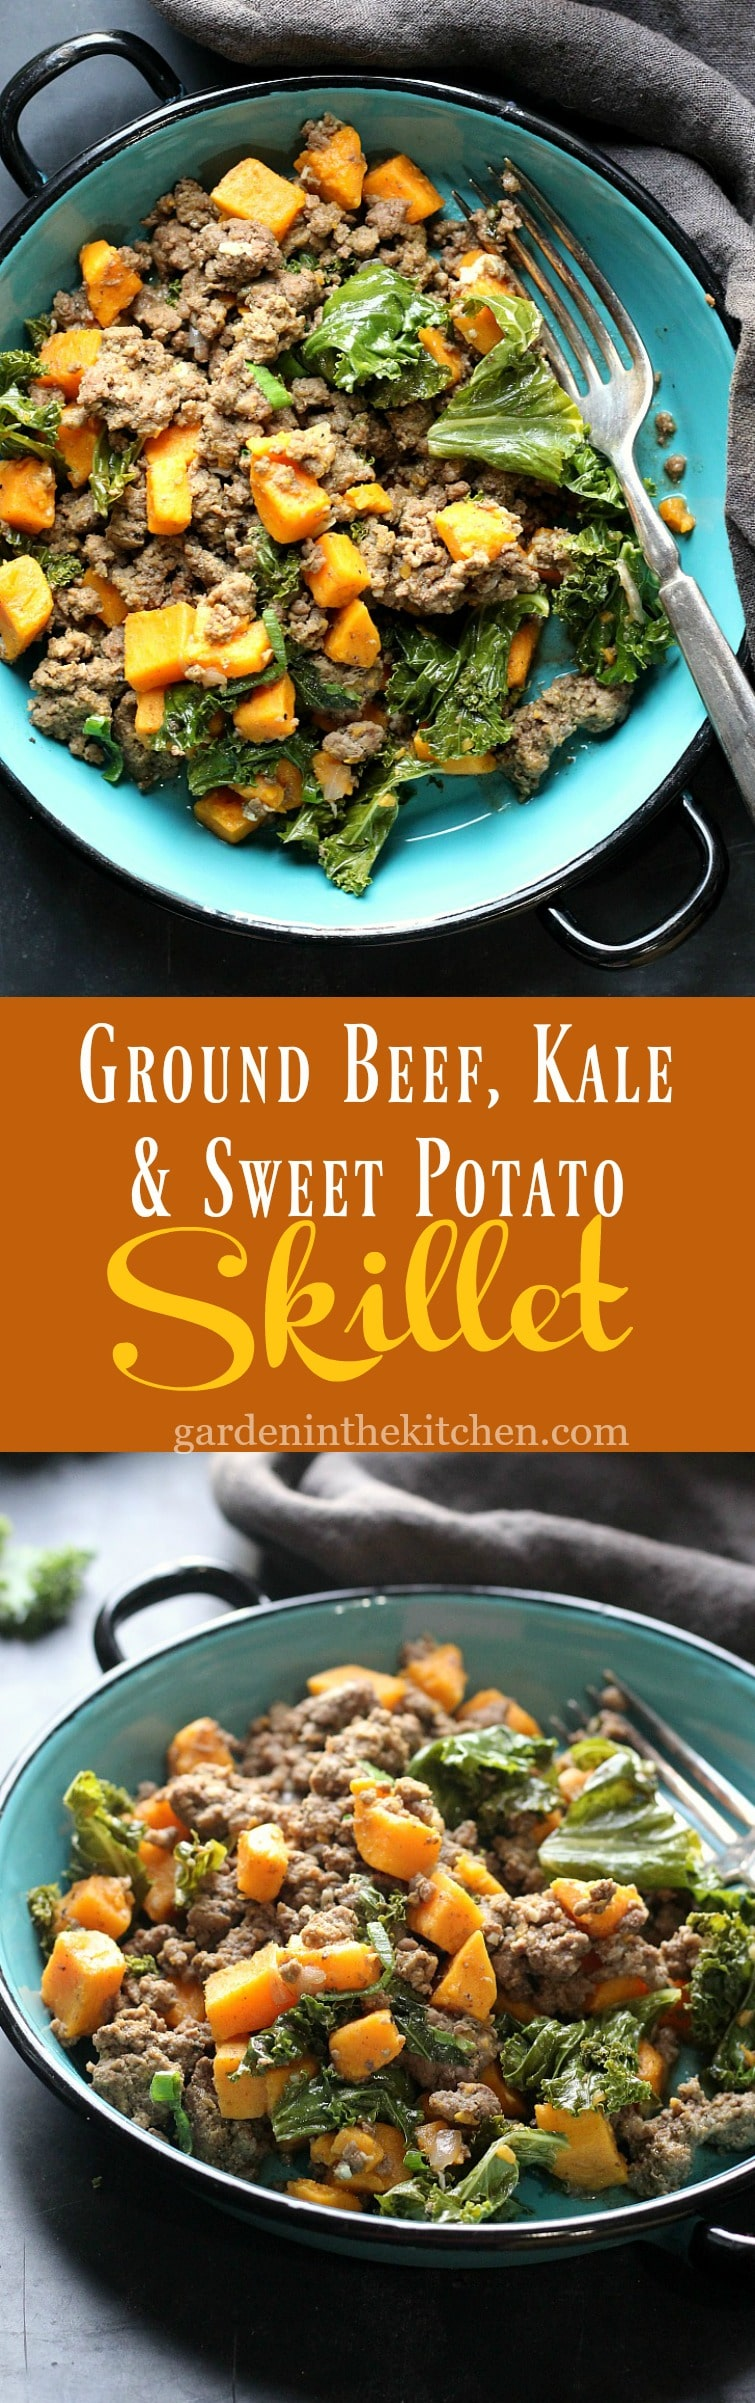 Ground Beef, Kale & Sweet Potato Skillet